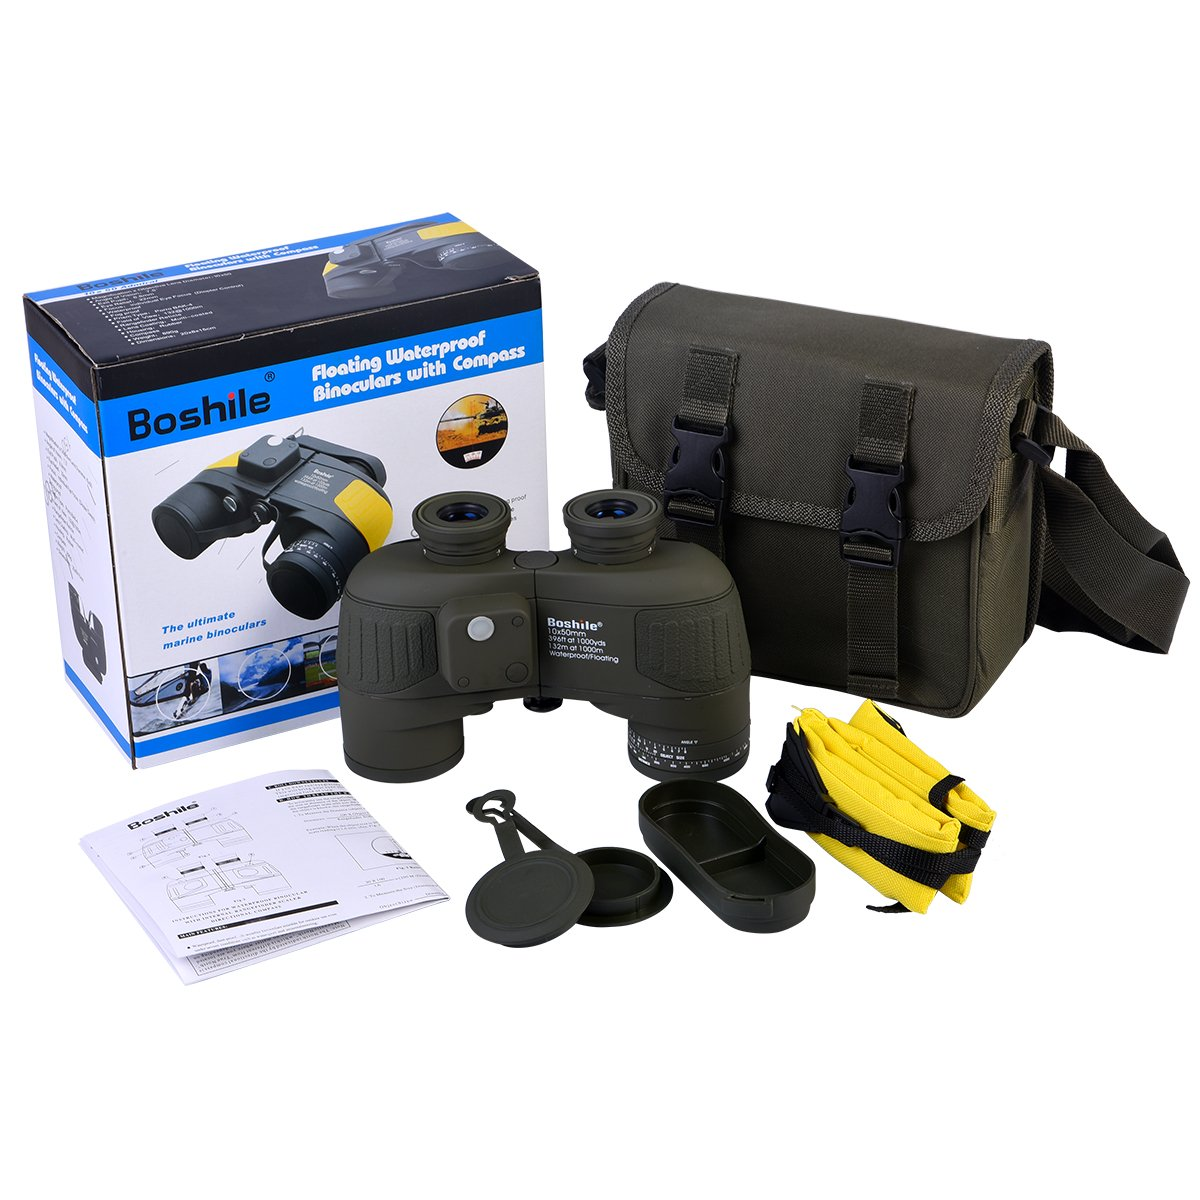 Begeer 10X 50mm Hign Definition Binoculars With BAK4 Prism and FMC Film Coated Lens Waterproof Binocular Telescope With Built-in Compass and Lights For Navigation Etc. (B)